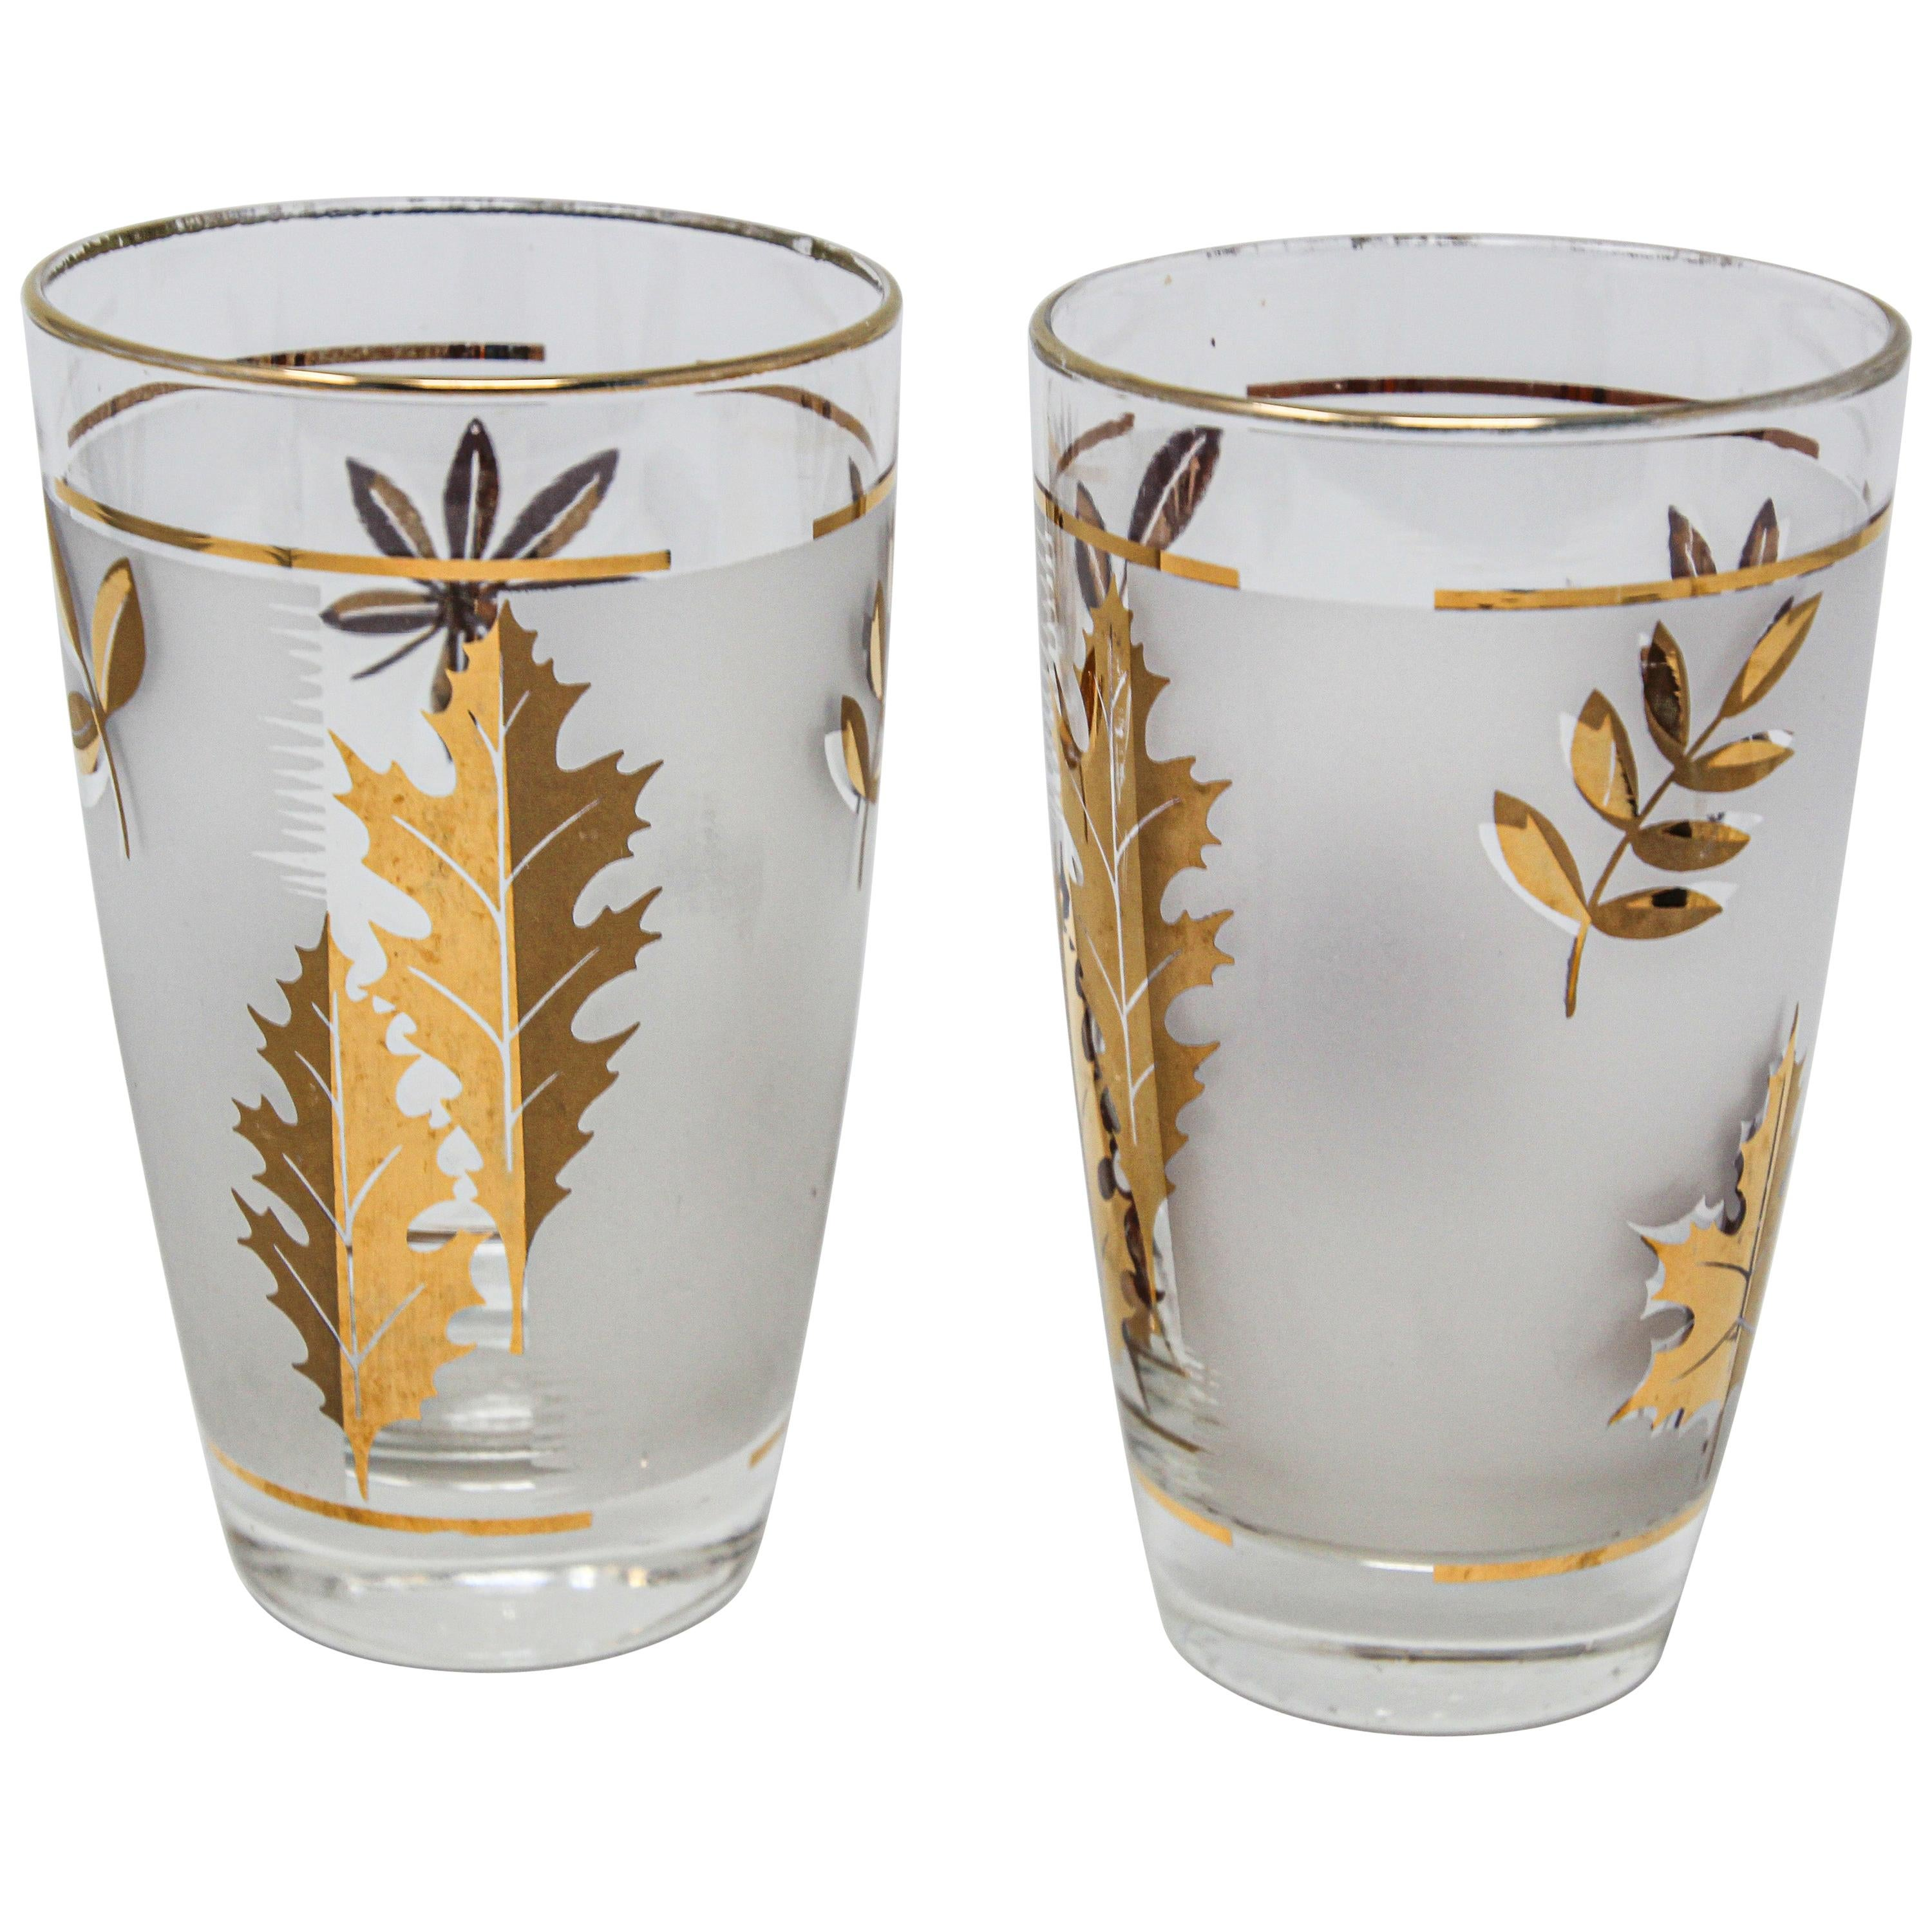 Set of Two Vintage Cocktail Glasses by Libbey